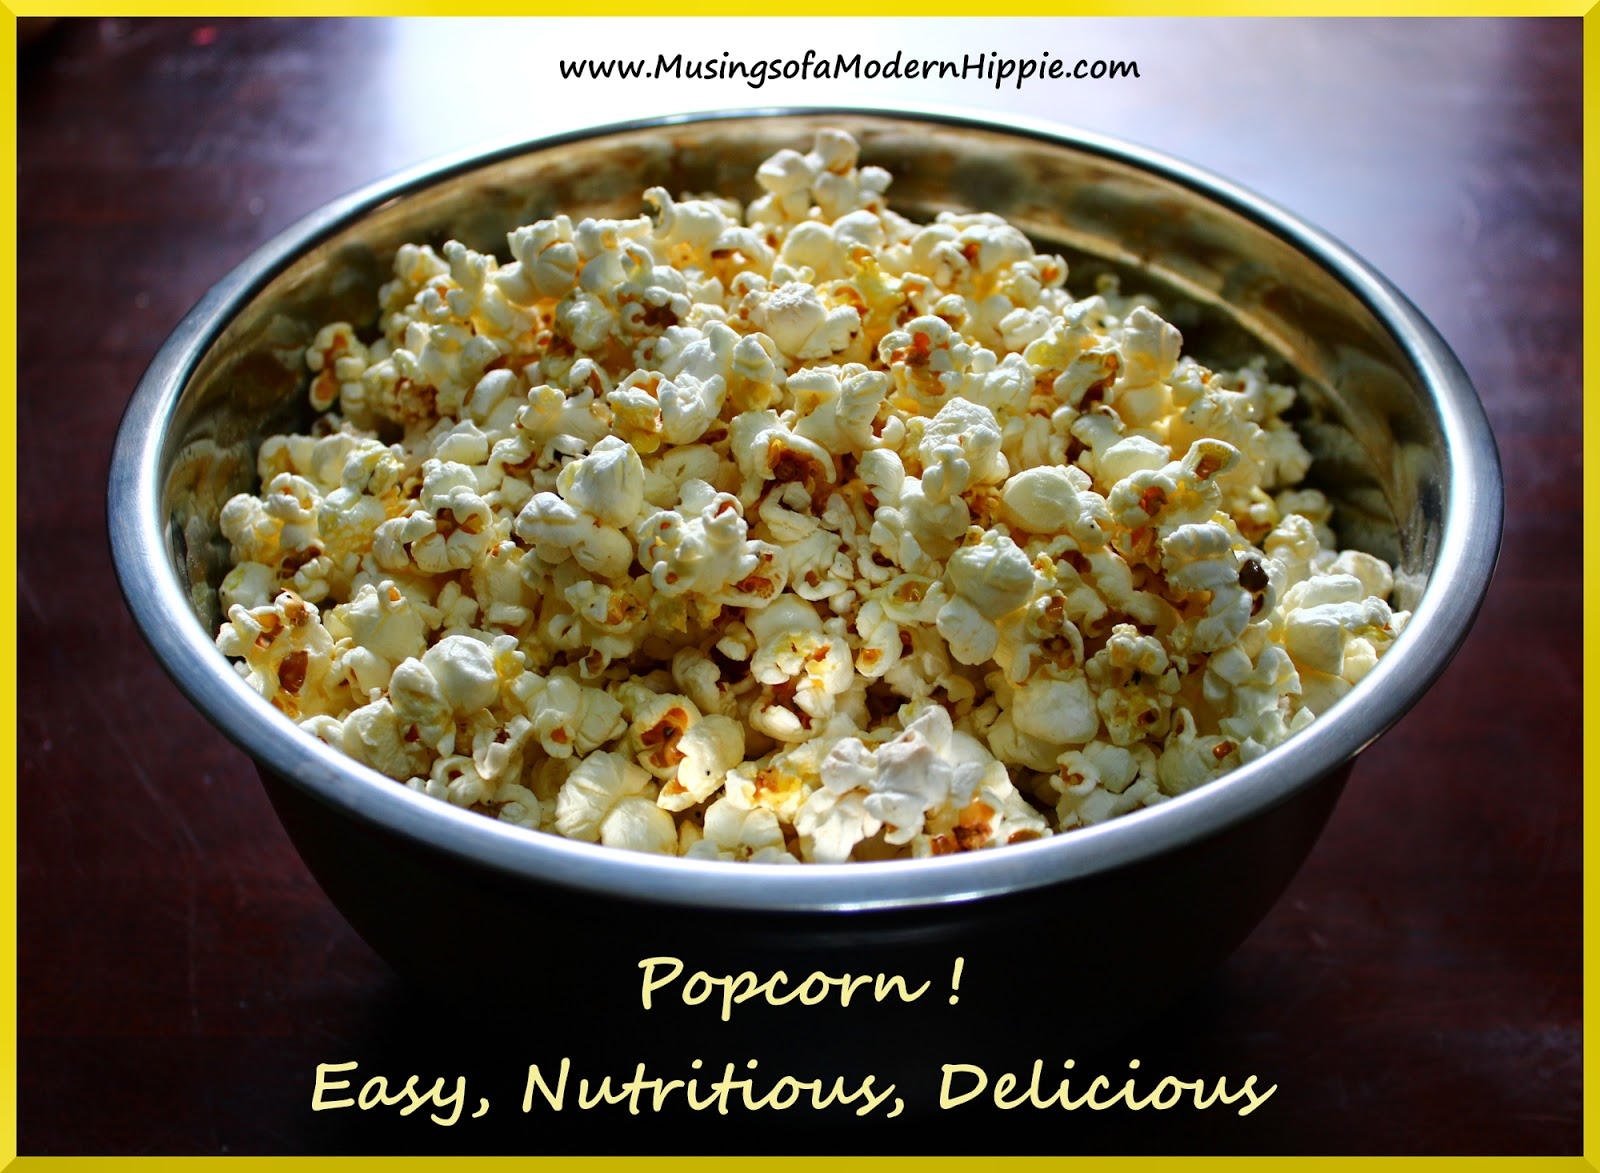 Healthy Popcorn Recipe | Musings of a Modern Hippie